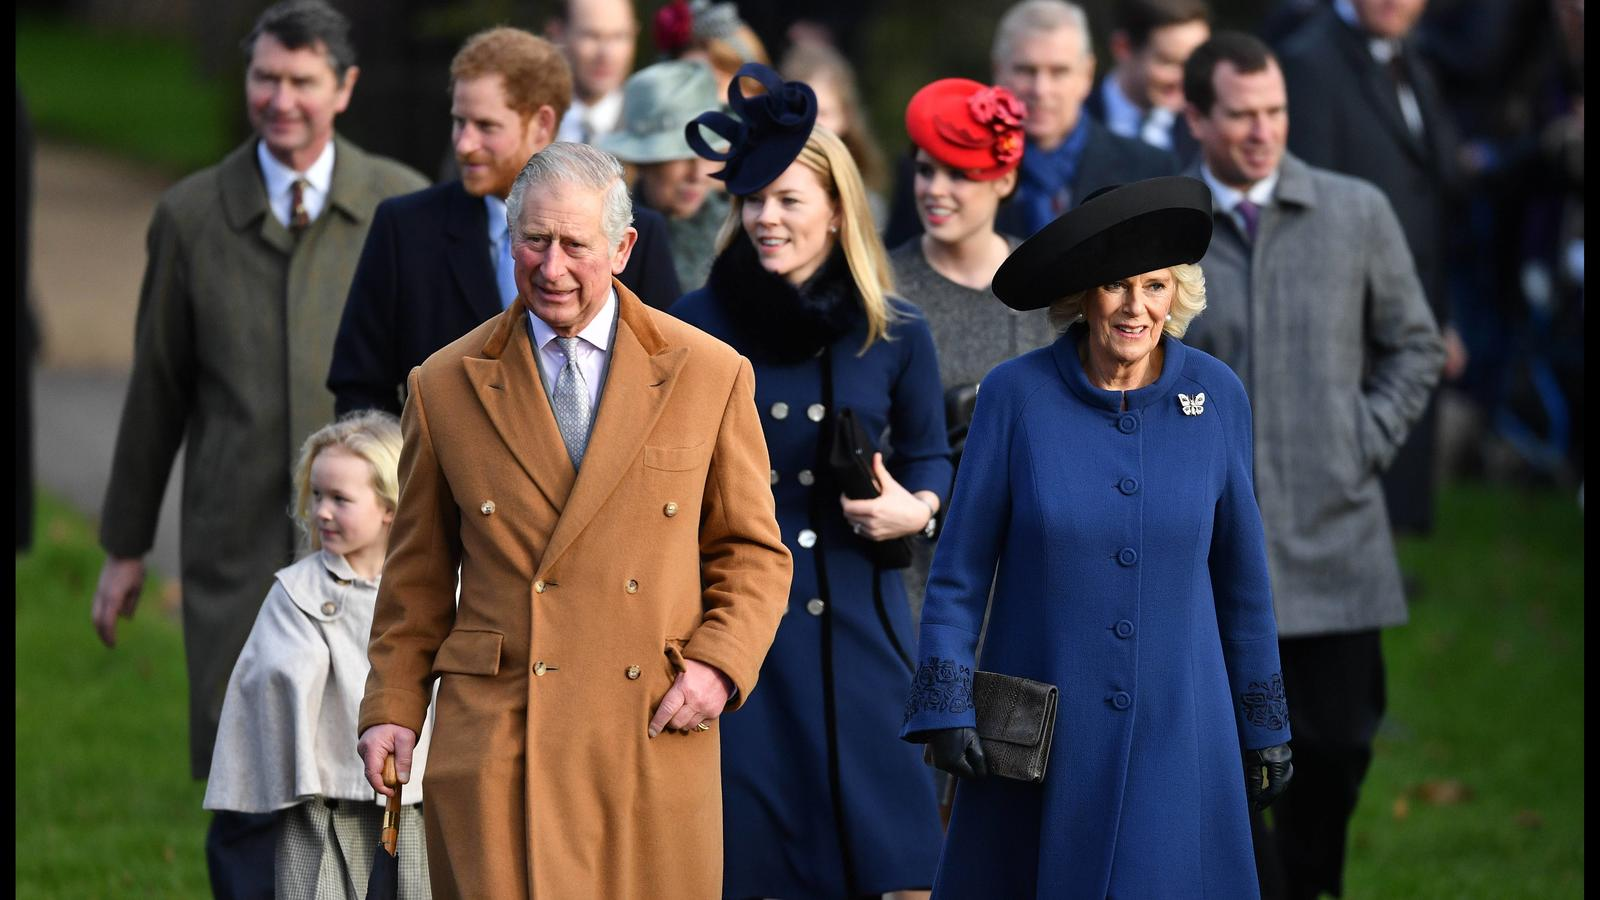 . 25/12/2016. Sandringham, United Kingdom. HM The Queen attends Christmas Day Service. St Mary Magdalene. Members of the Royal Family walk from Sandringham House for the Christmas Day Service at church of St Mary Magdalene, on the Sandringham estate,